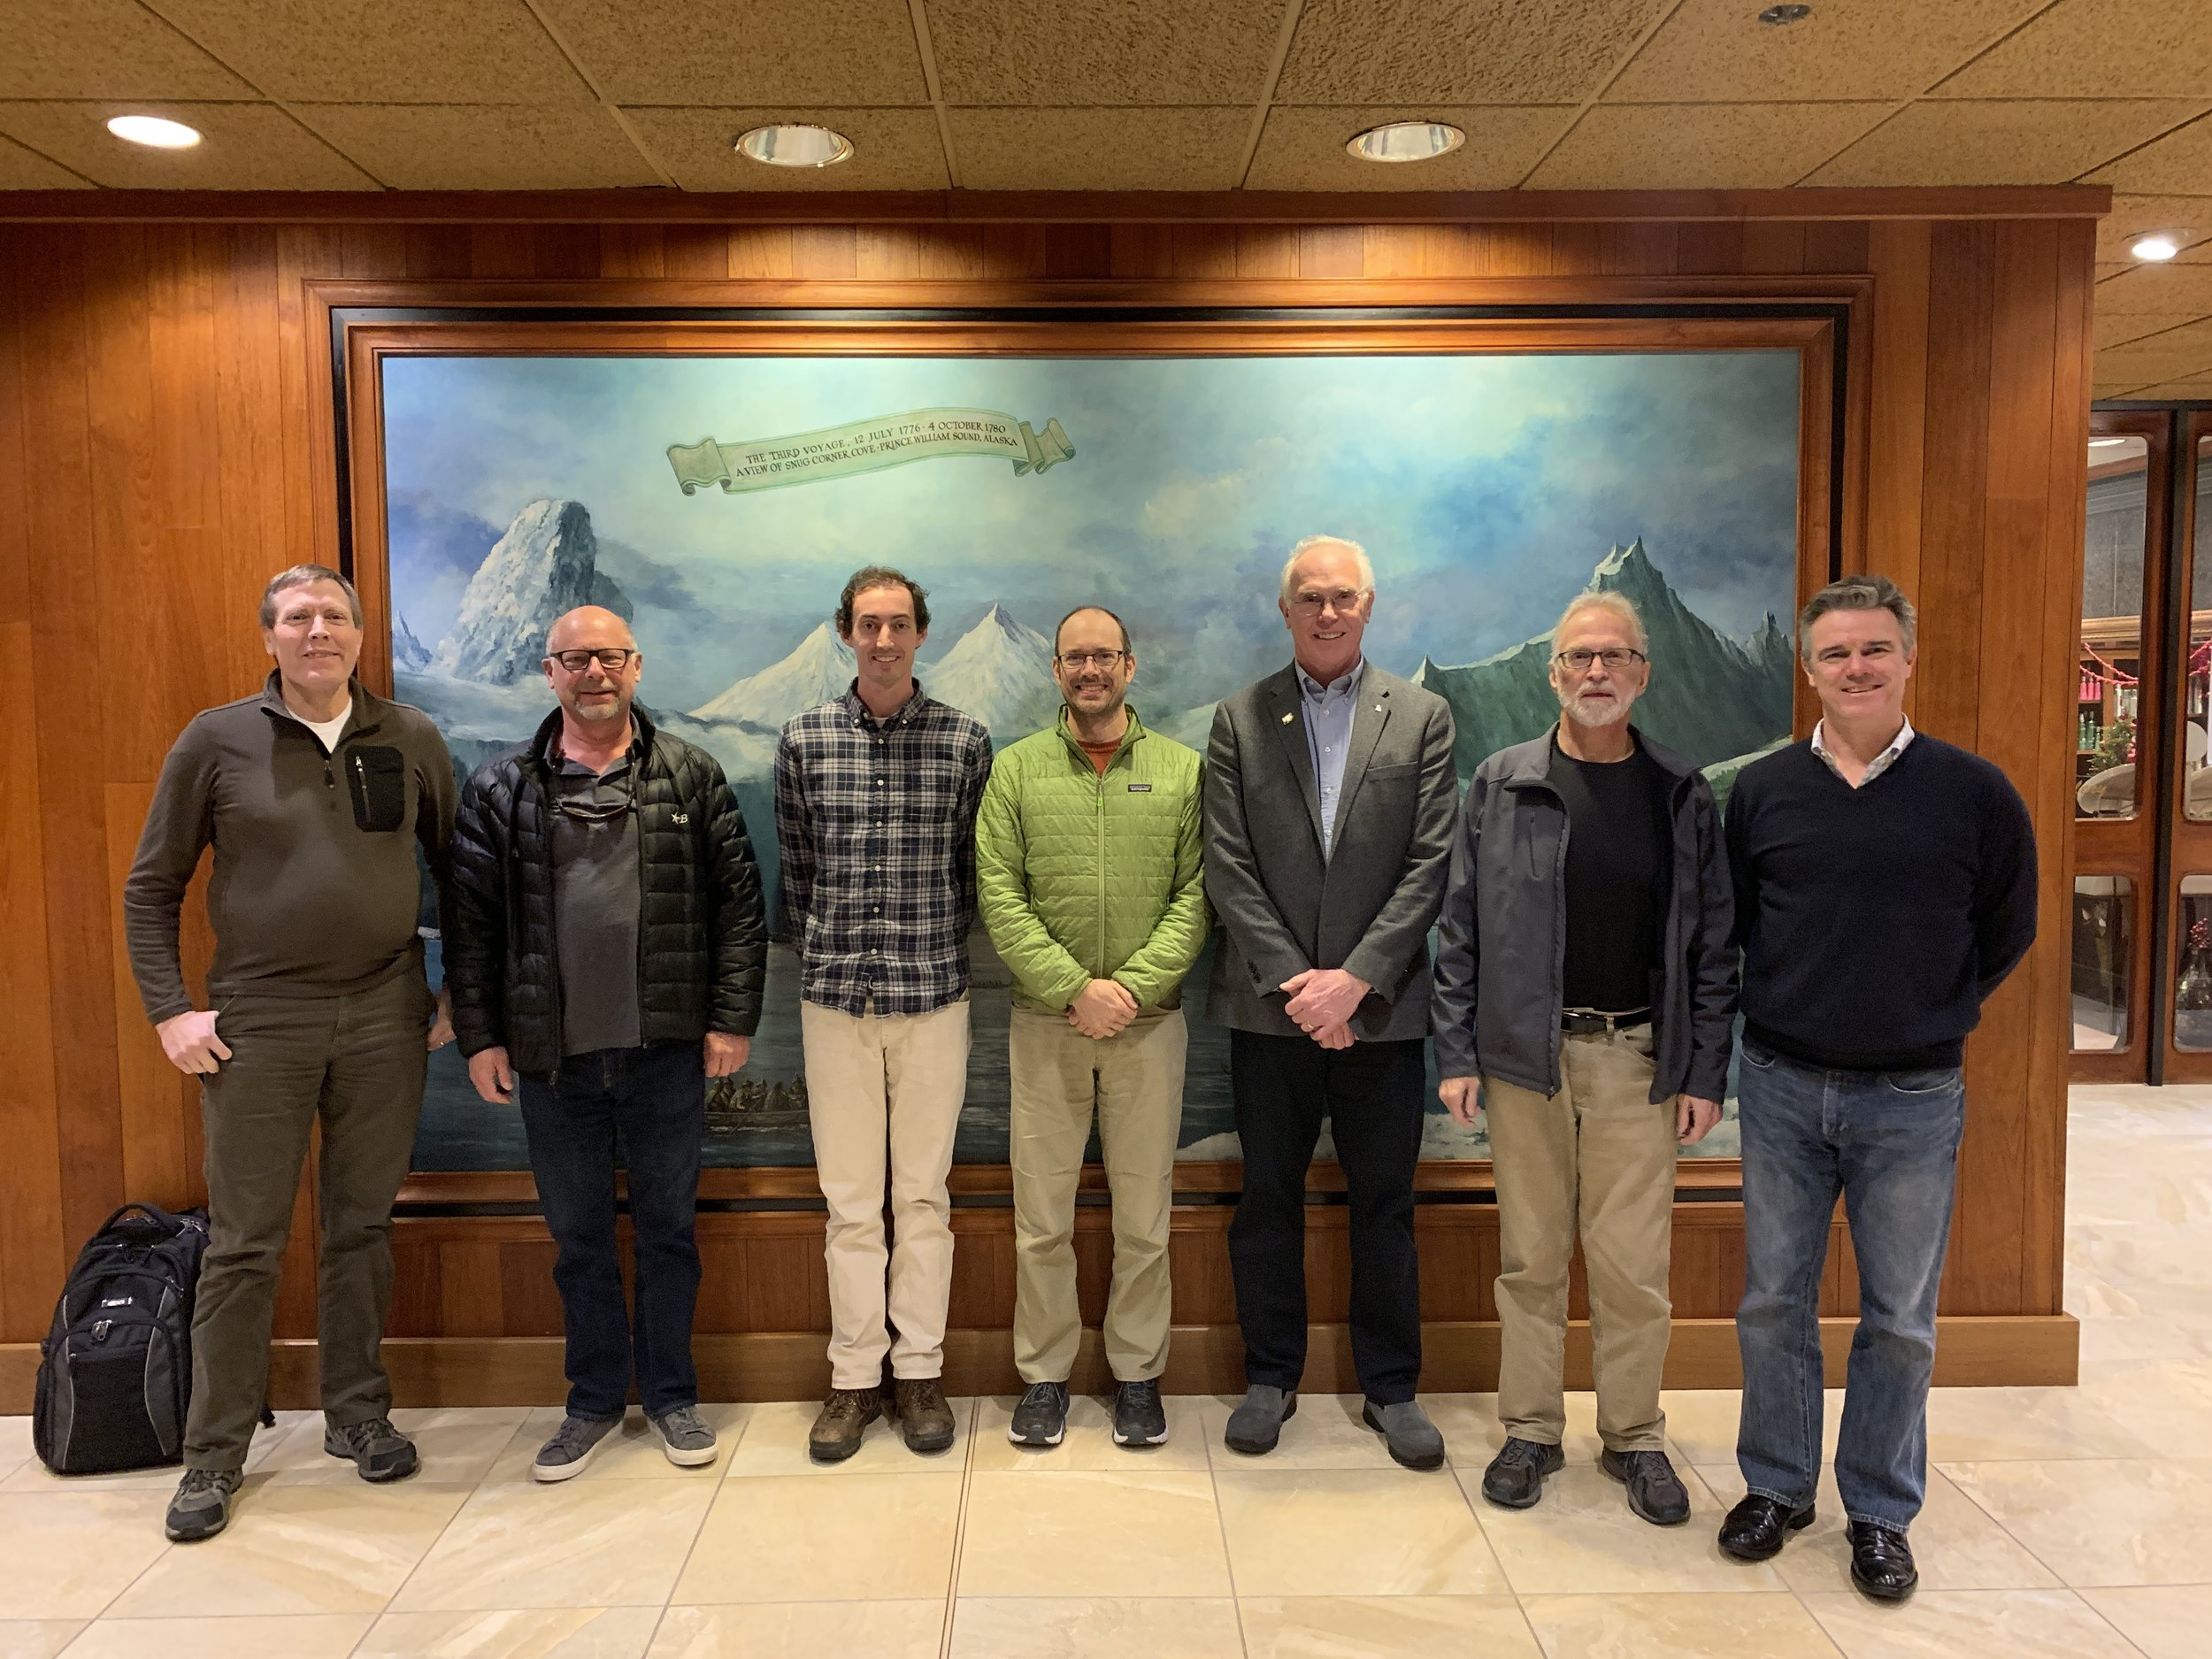 The PCCRC Board (from L to R): Dr. Keith Criddle/CFOS, Karl Bratvold/Aleutian Spray Fisheries, Austin Estabrooks/At-Sea Processors Assn (non-board member), Dr. Ben Williams/ADF&G, Dr. Larry Hinzman/UAF, Jan Jacobs/American Seafoods Group, and Dr. Brad Moran/CFOS (Not present Stephanie Madsen/At-Sea Processors Assn.)